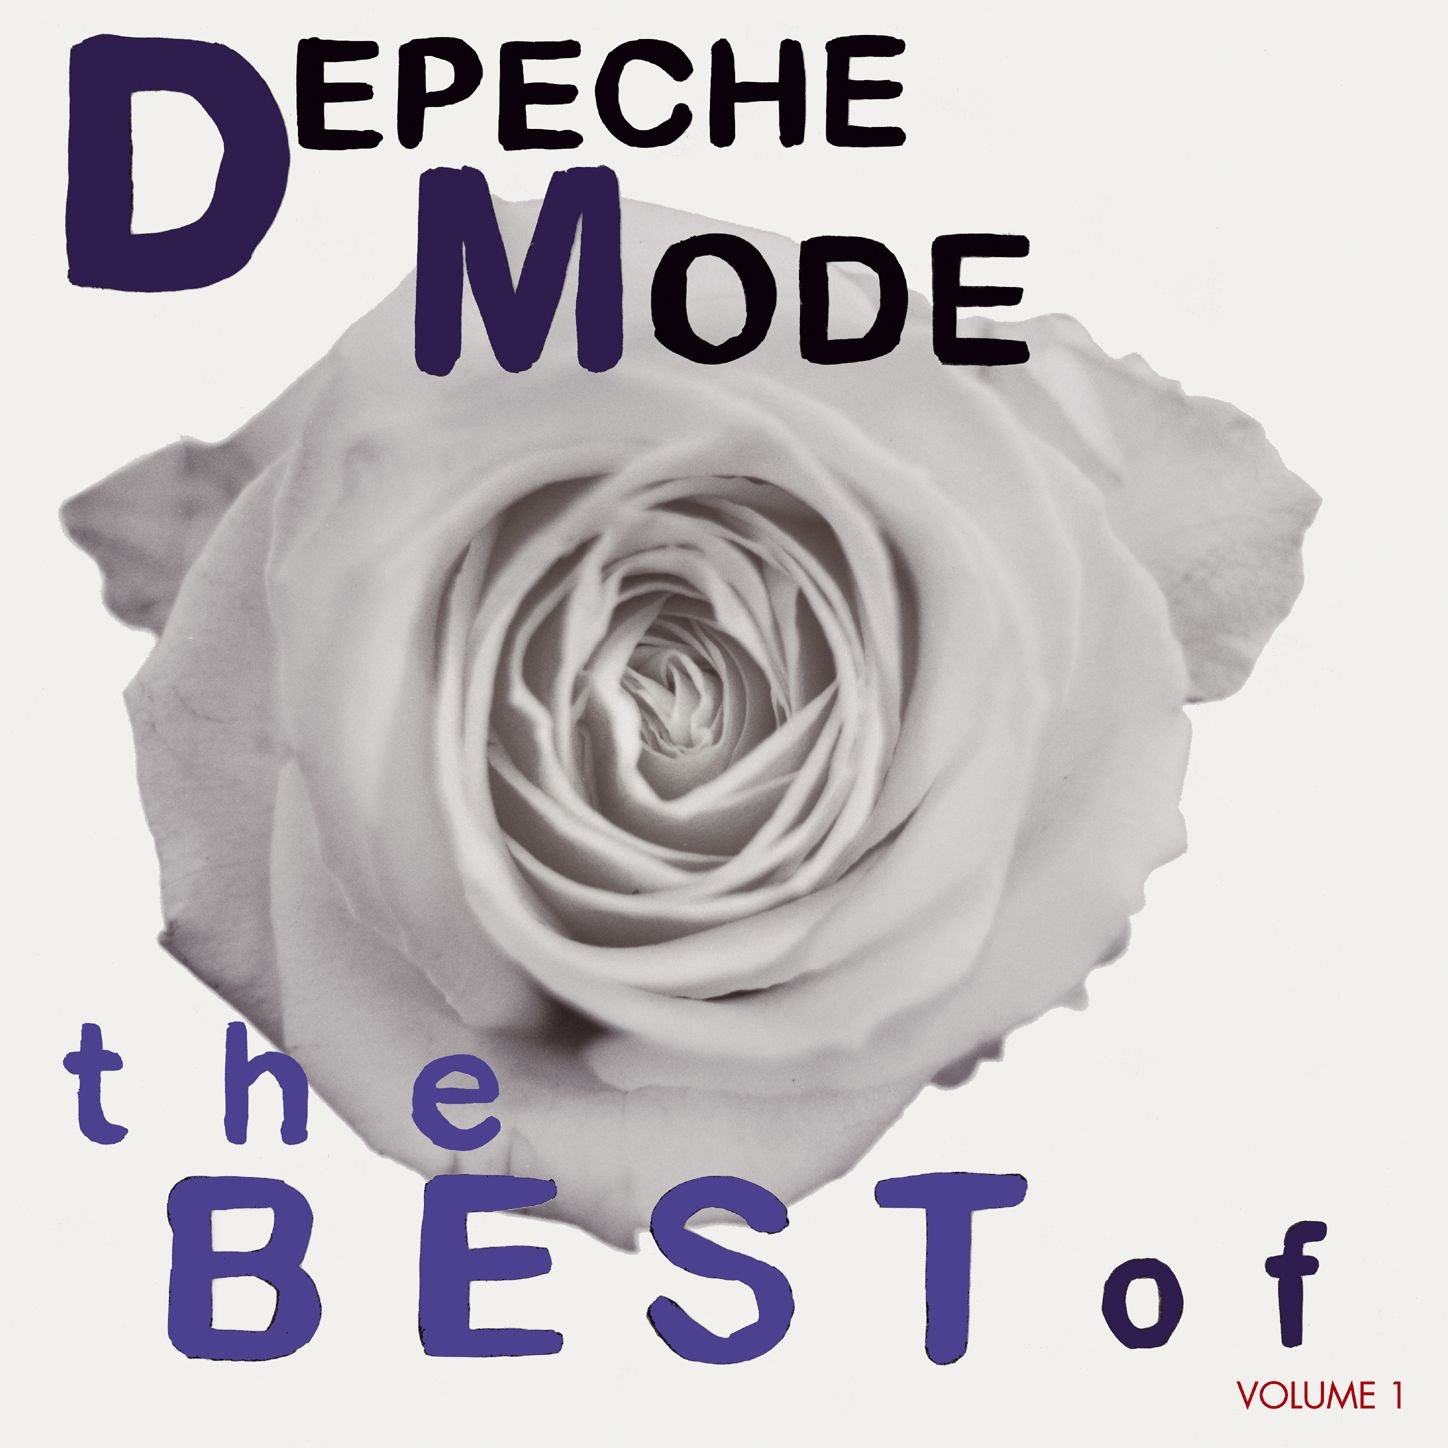 The Best Of Depeche Mode, Volume 1 by Sire/Reprise/Mute